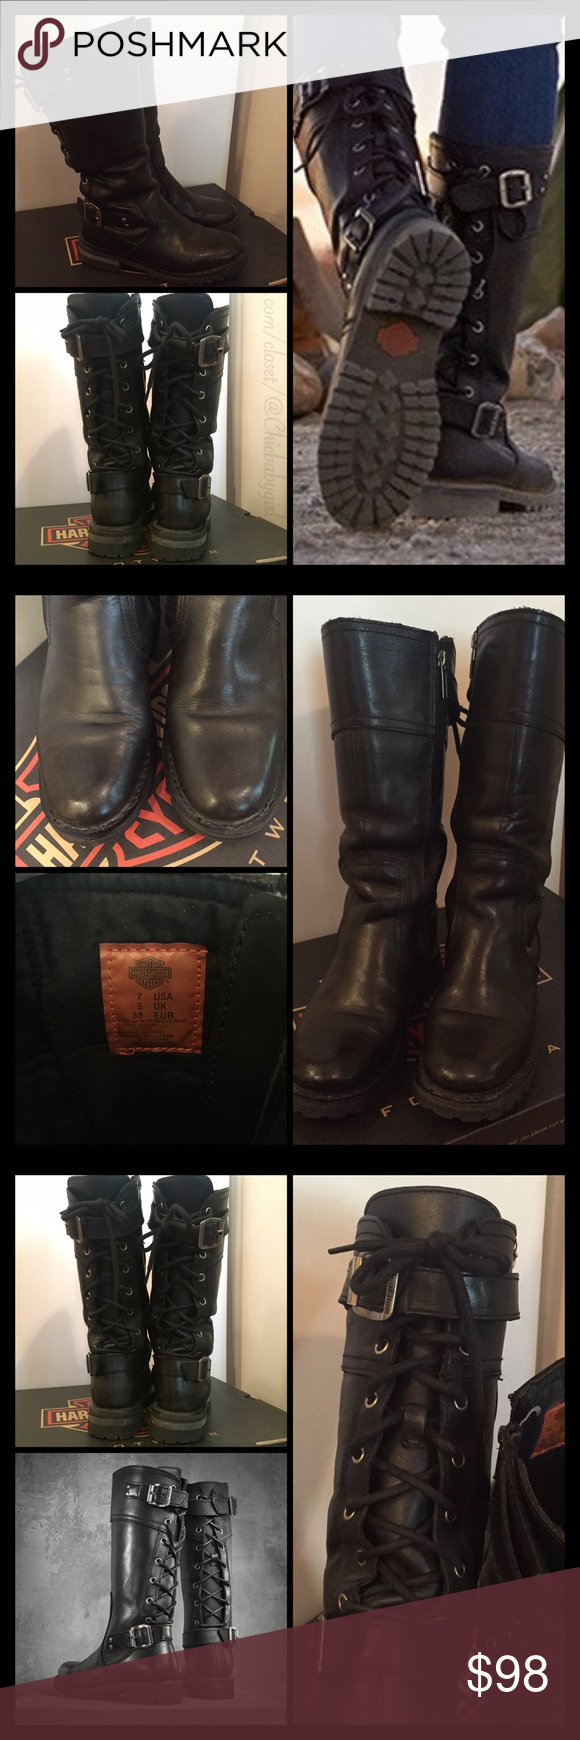 """SOLDOUTALEXA BACK LACED BIKER BOOT $188 Retail + Tax  Look great on or off the bike!  -Full grain leather upper and rubber outsole -Full length cushion sock lining -Goodyear welt construction -YKK locking inside zipper -Lace-up back -Shaft height: 12.5""""; Heel height: 1.5"""" -Price reflects condition--signs of wear   2+ BUNDLE=SAVE  ‼️NO TRADES   Brand Items Authentic   ✈️ Ship Same Day--Purchase By 2PM PST   USE BLUE OFFER BUTTON TO NEGOTIATE   ✔️ Ask Questions Not Answered In…"""